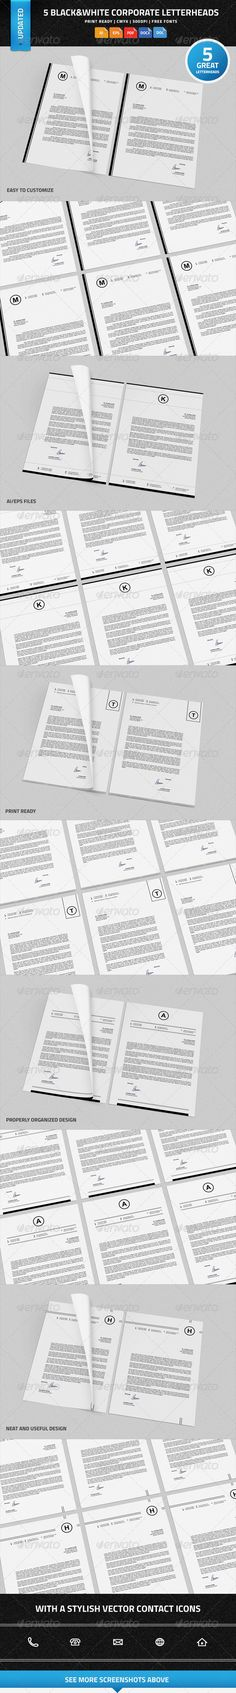 Corporate Letterhead Vol14 with MS Word DOC DOCX by nazdrag - ms word letterhead templates free download